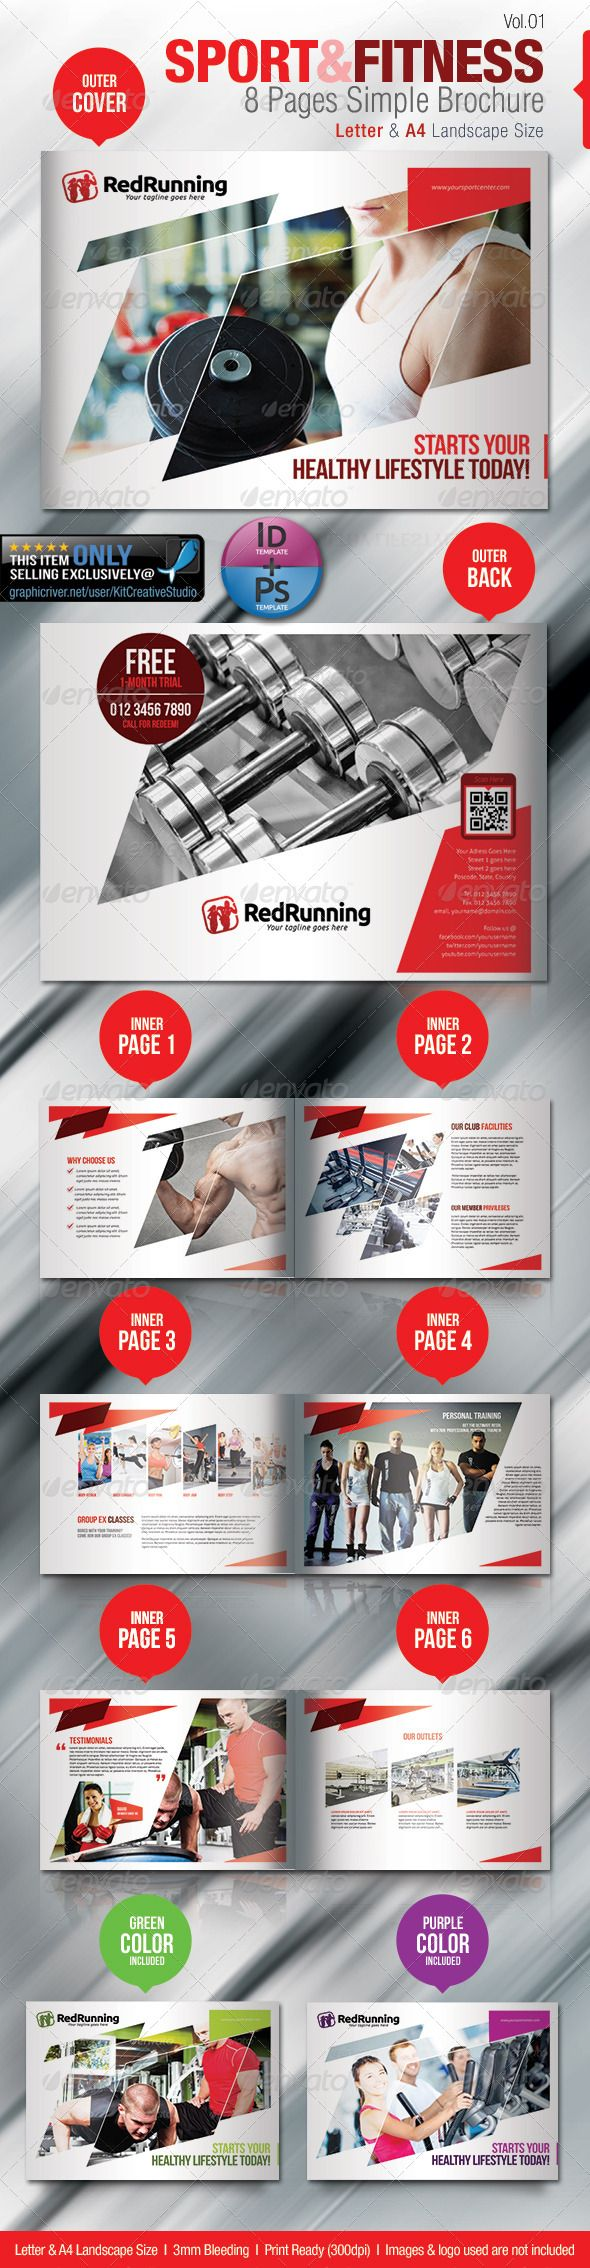 Fitness  Sport  Pages Simple Brochure  Brochures Layouts And